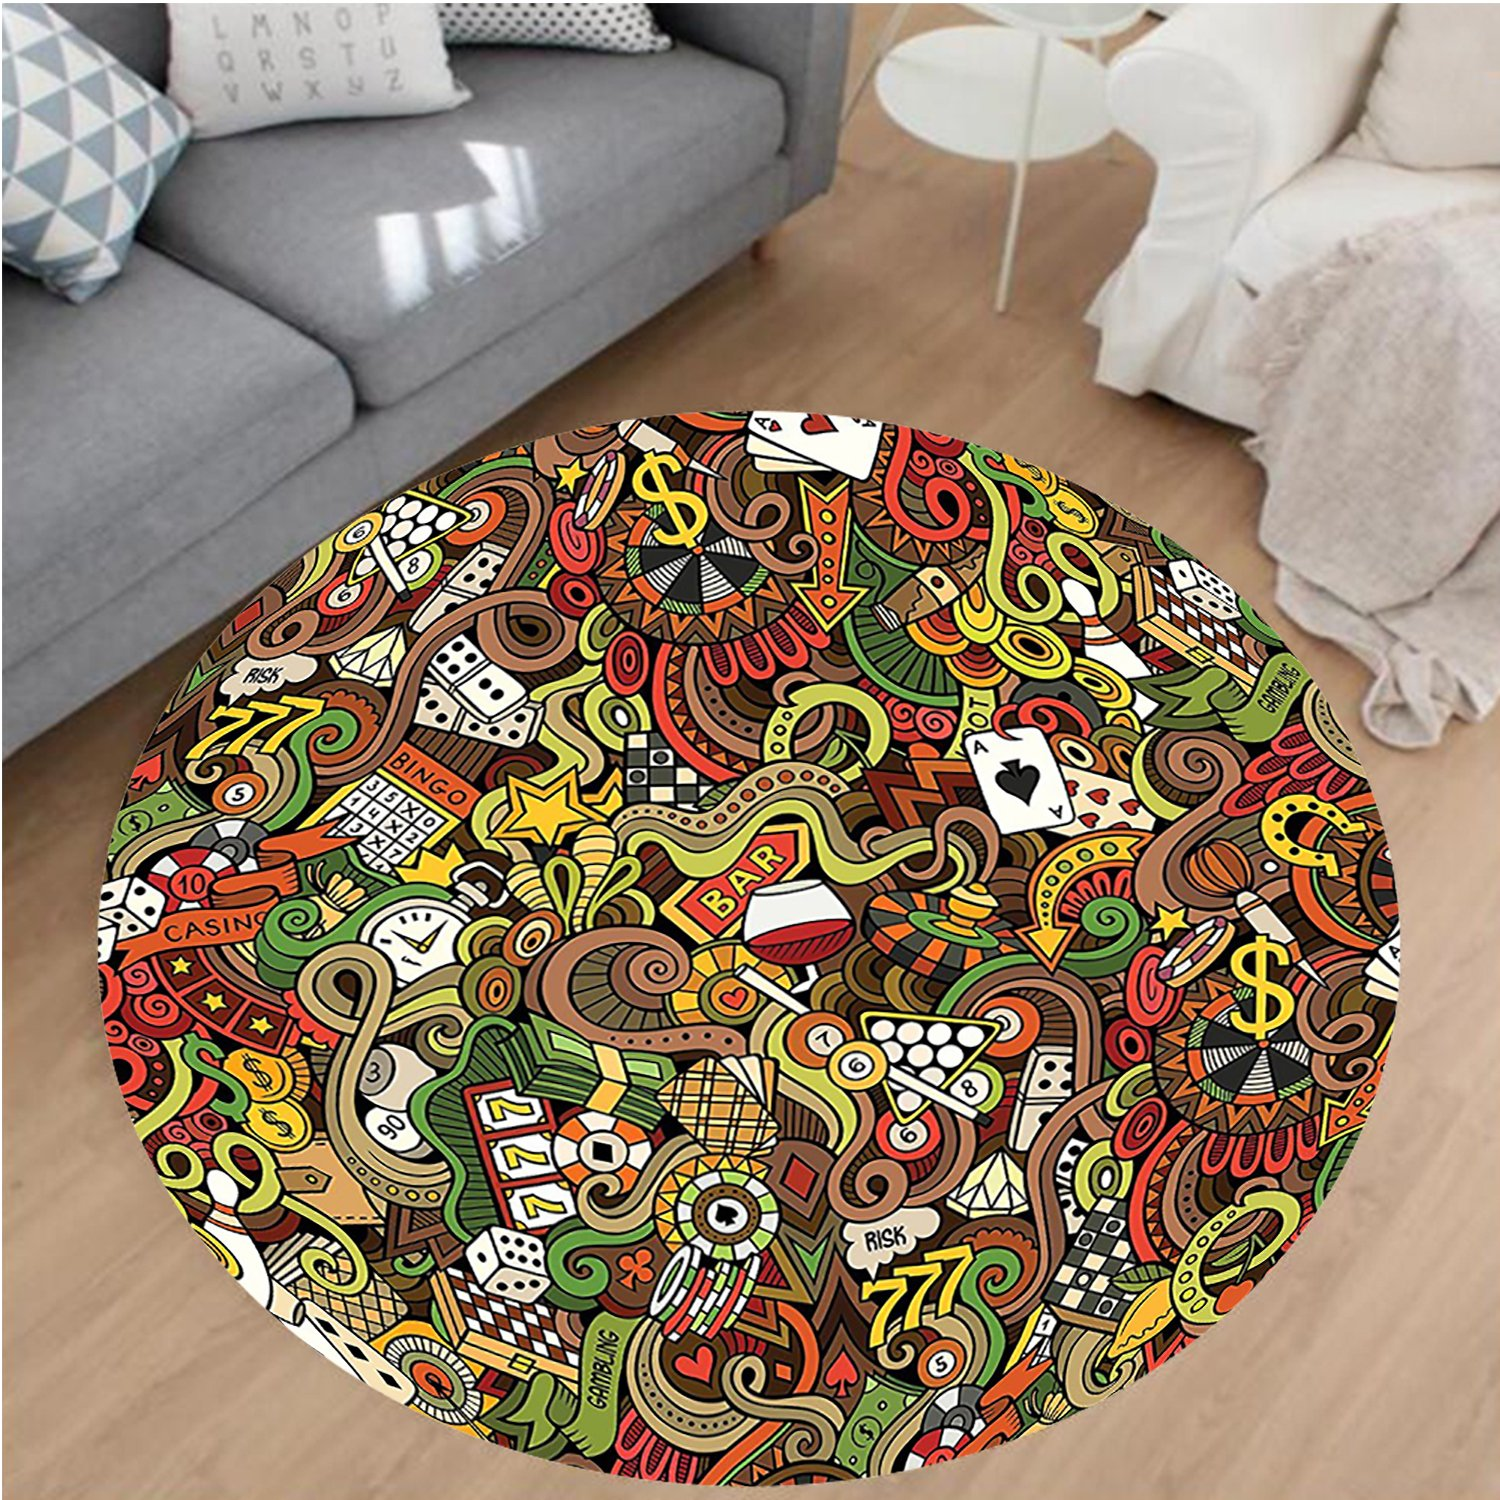 Nalahome Modern Flannel Microfiber Non-Slip Machine Washable Round Area Rug-Casino Decorations Doodles Style Art Bingo Excitement Checkers King Tambourine Vegas area rugs Home Decor-Round 47'' by Nalahome